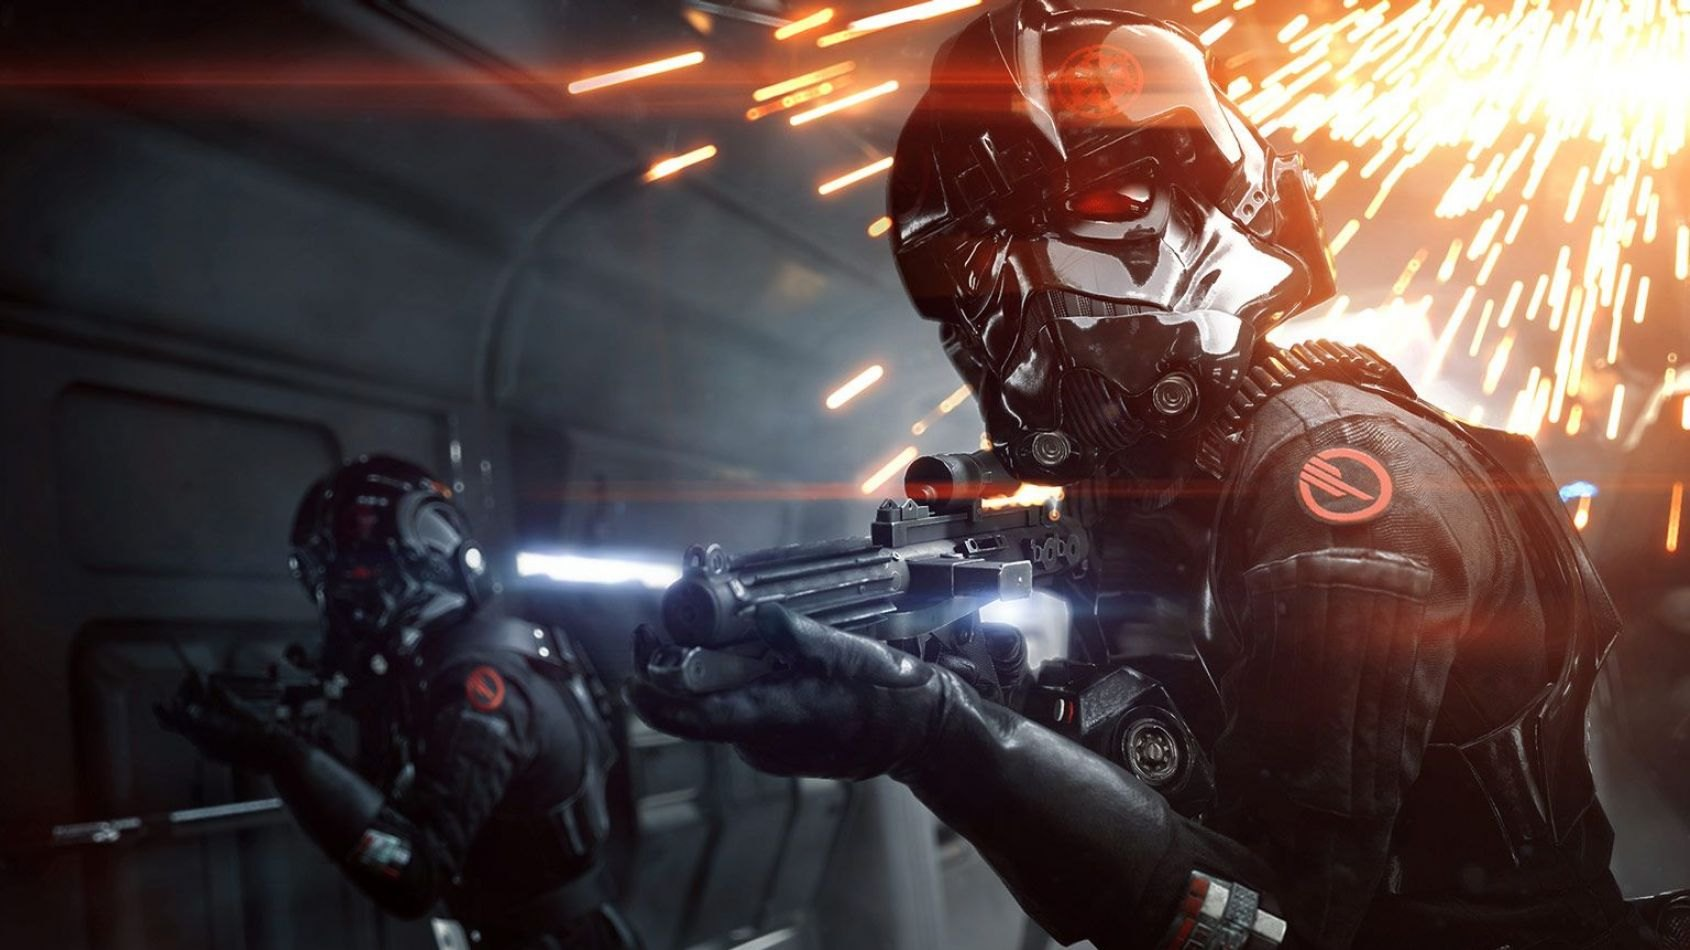 Les moments forts du panel Battlefront II